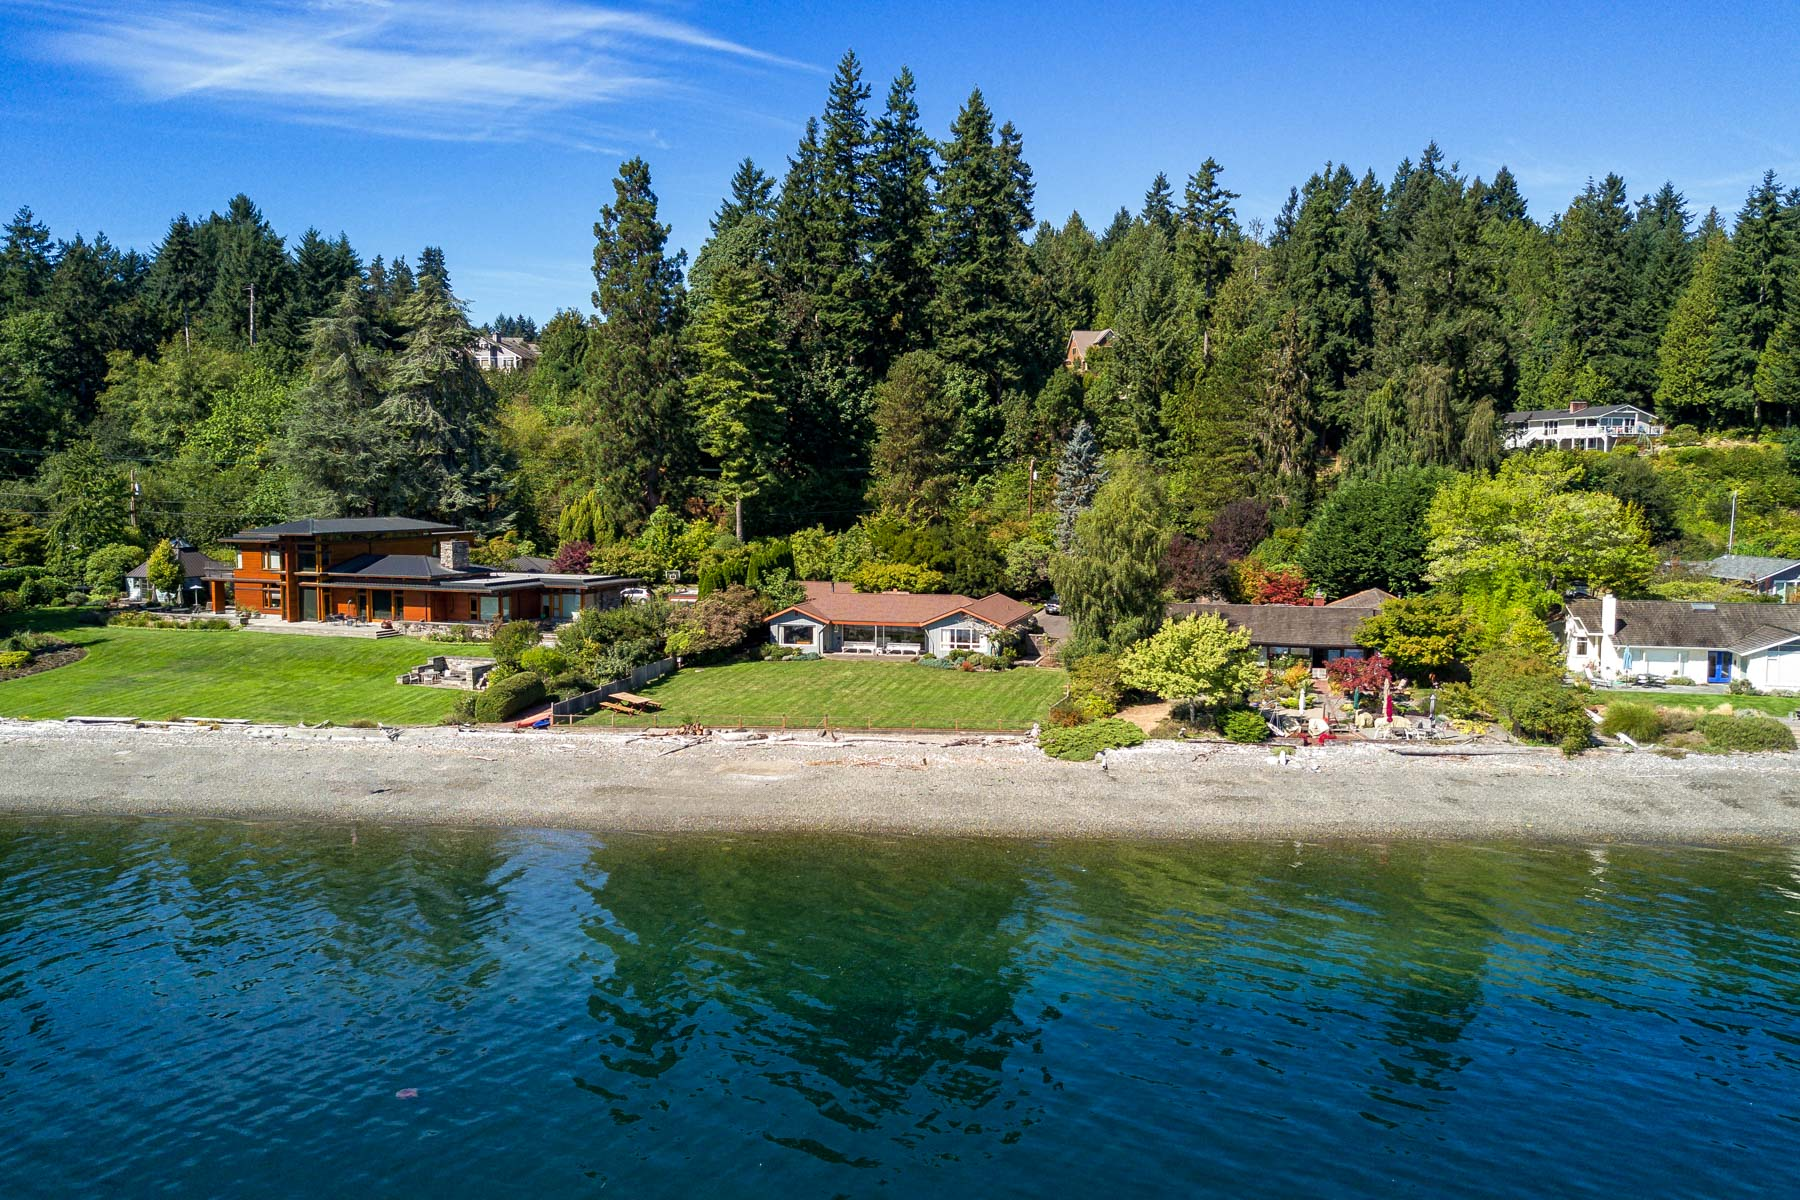 Single Family Home for Sale at Island Living on Point White 3708 Point White Drive NE Bainbridge Island, Washington 98110 United States